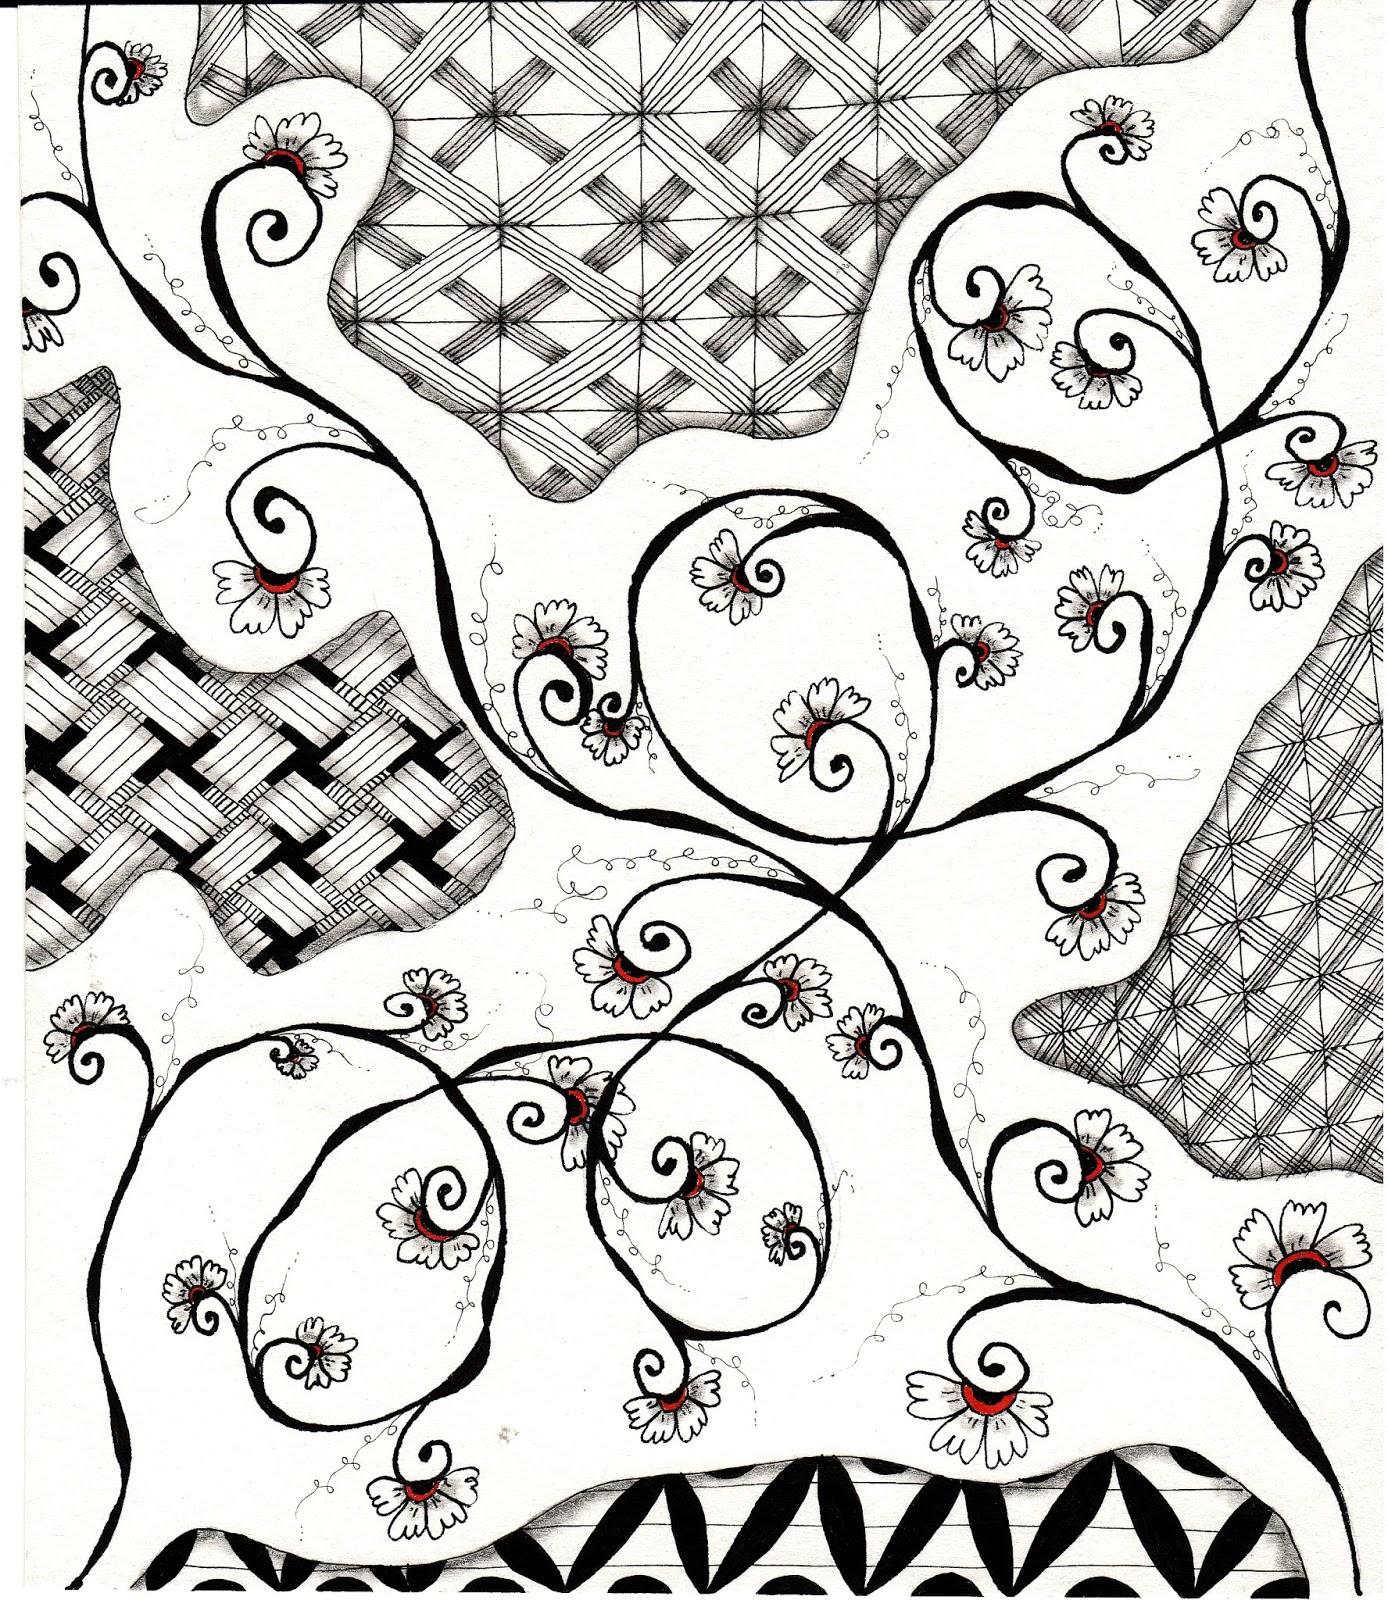 Inquisitive Sue Zentangle Challenge 130 UMT Henna Drum